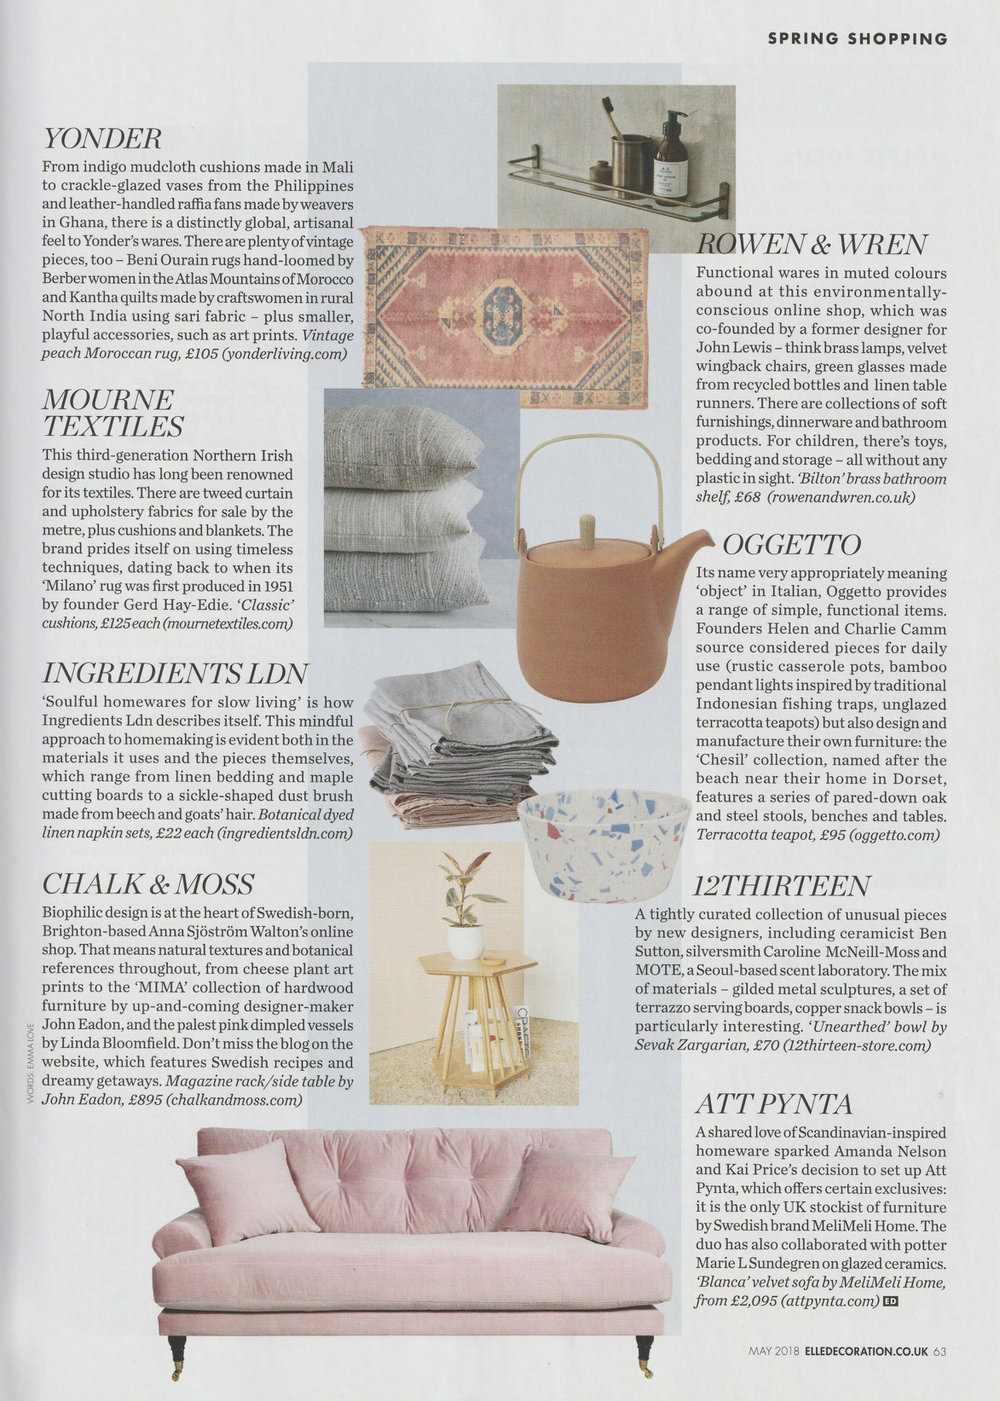 Elle Deco / May '18